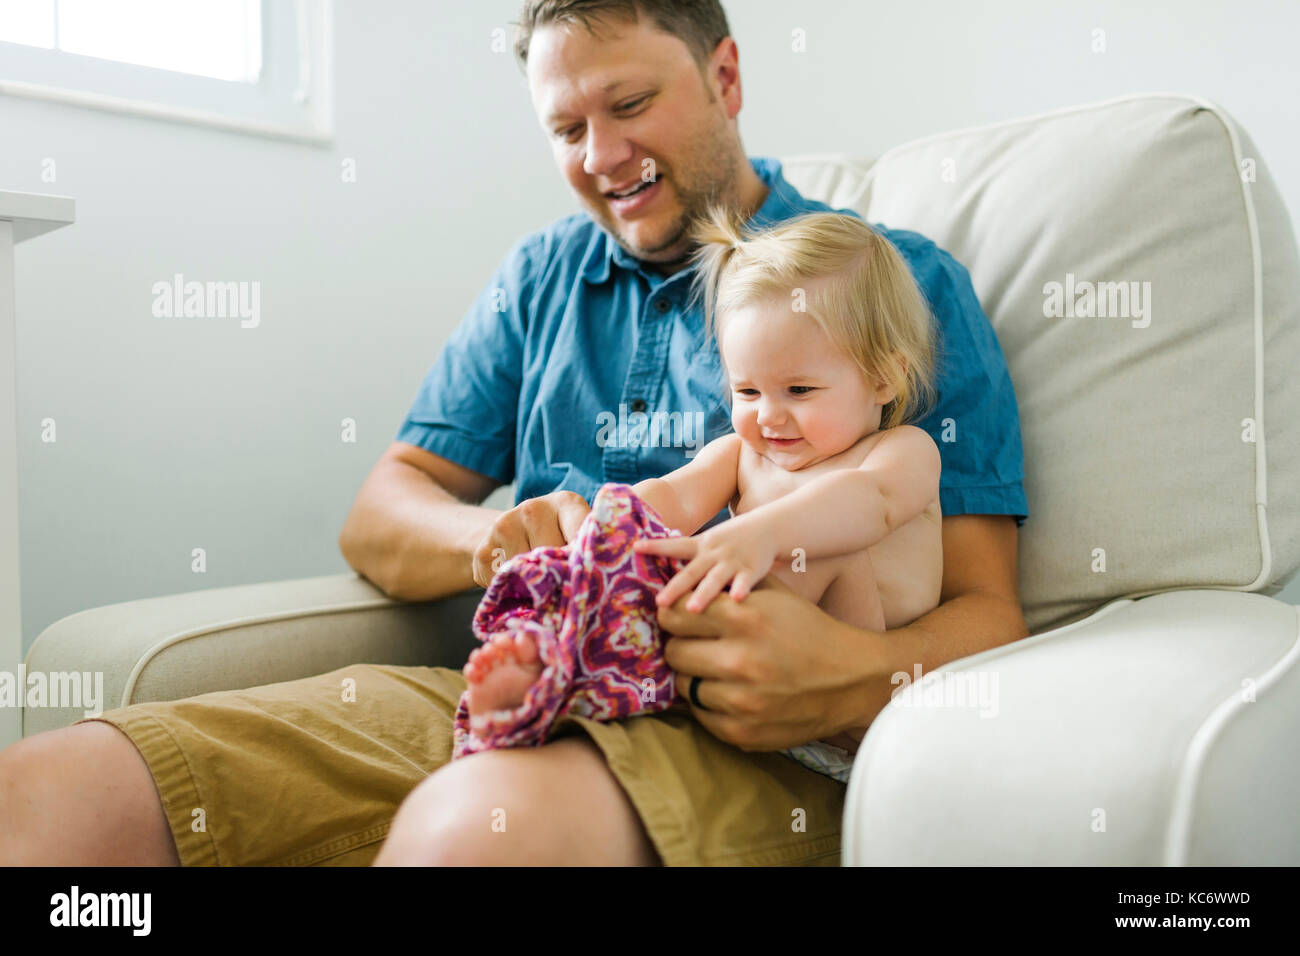 Father with baby girl (12-17 months) sitting in living room - Stock Image